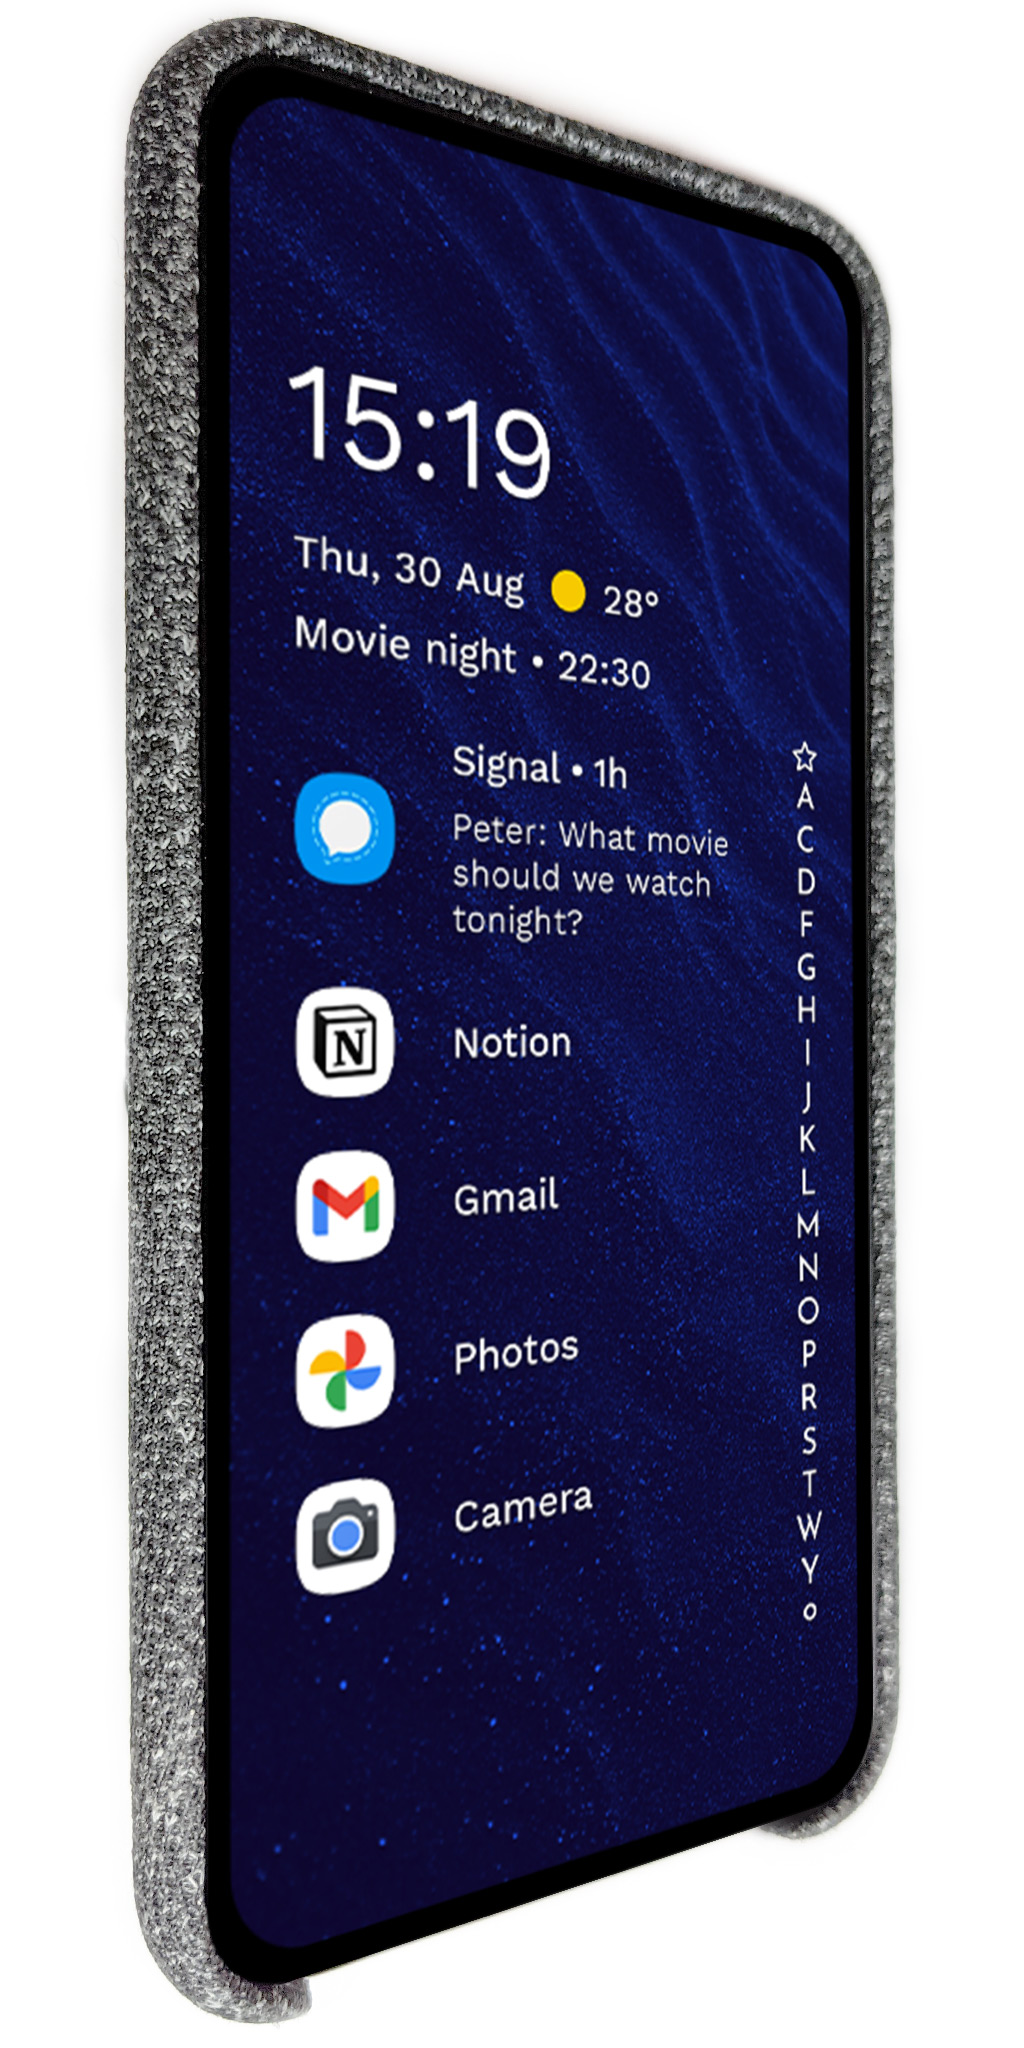 Niagara Launcher displayed on a phone